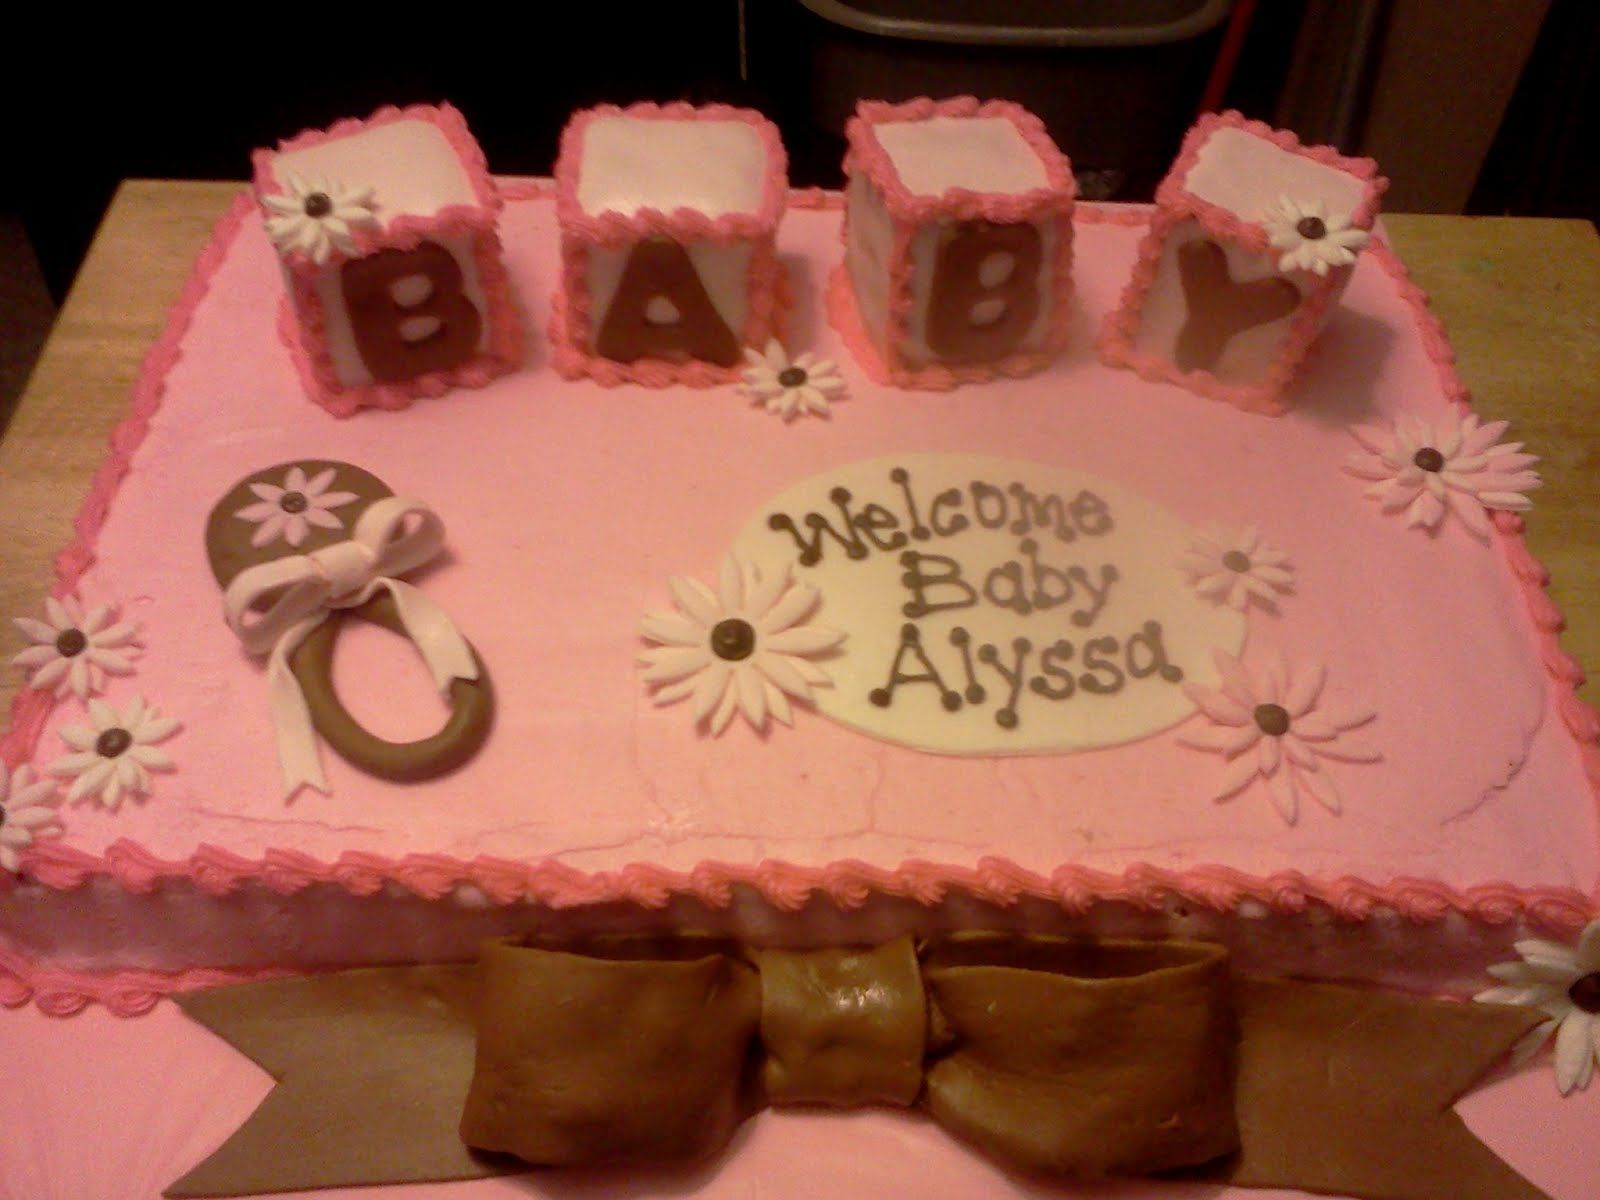 Groovy Kroger Baby Shower Cakes Cake Is Frosted With Buttercream And Personalised Birthday Cards Cominlily Jamesorg